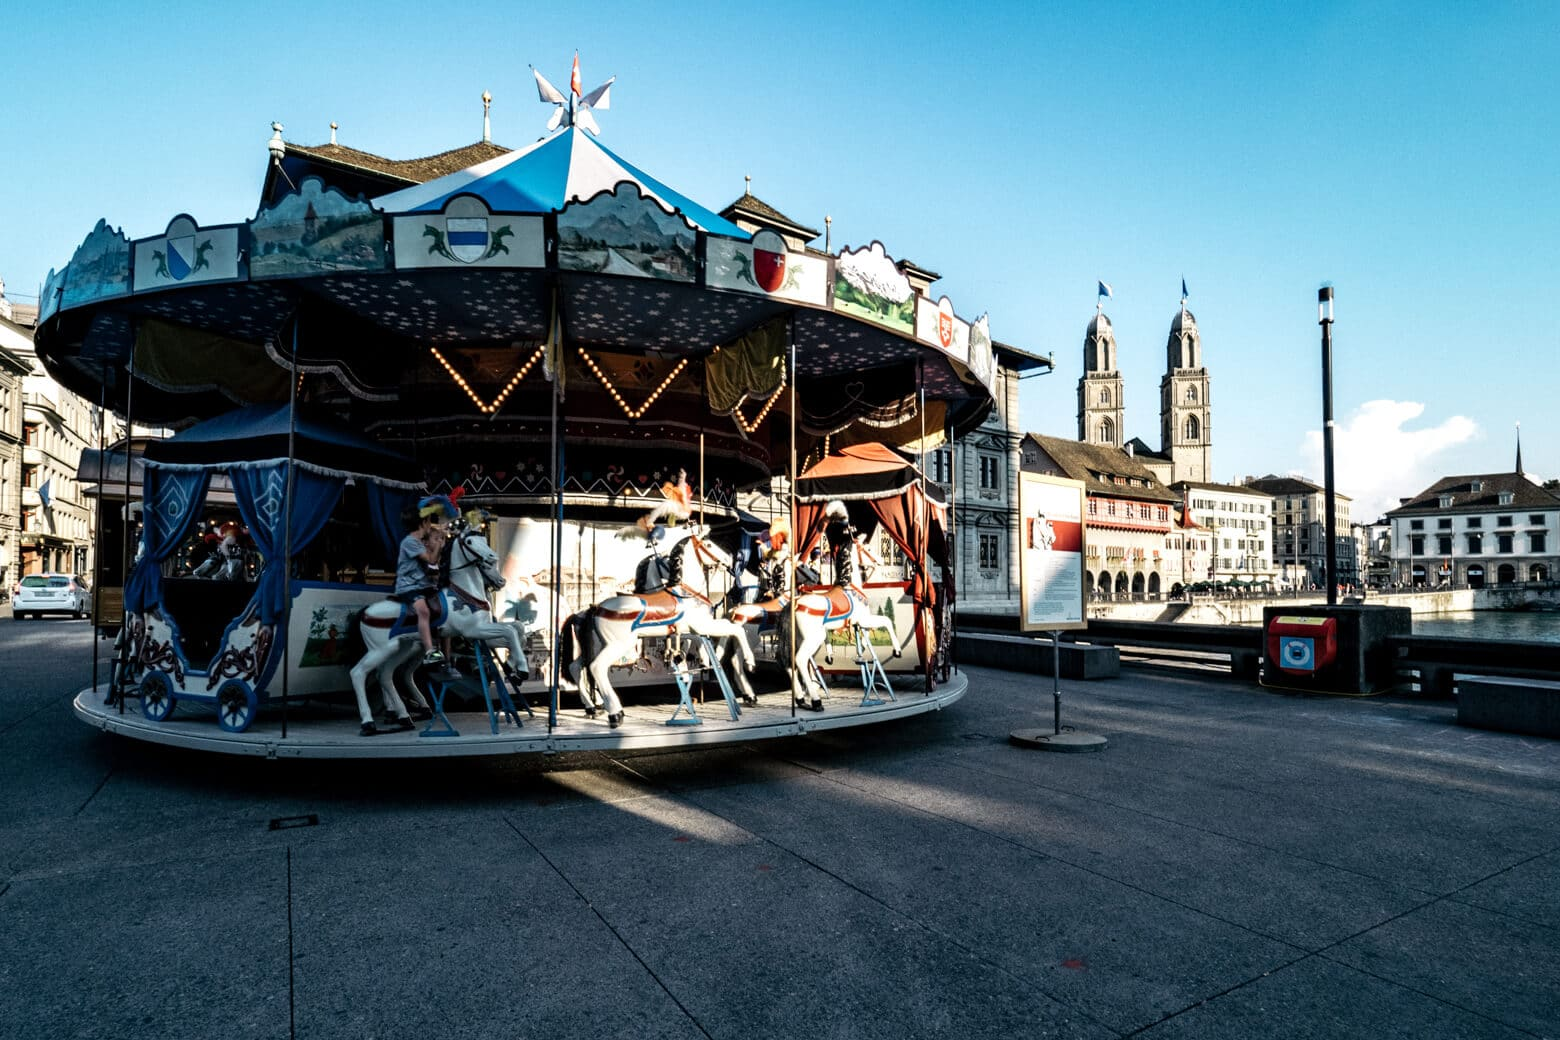 Carousel in Zurich, Switzerland